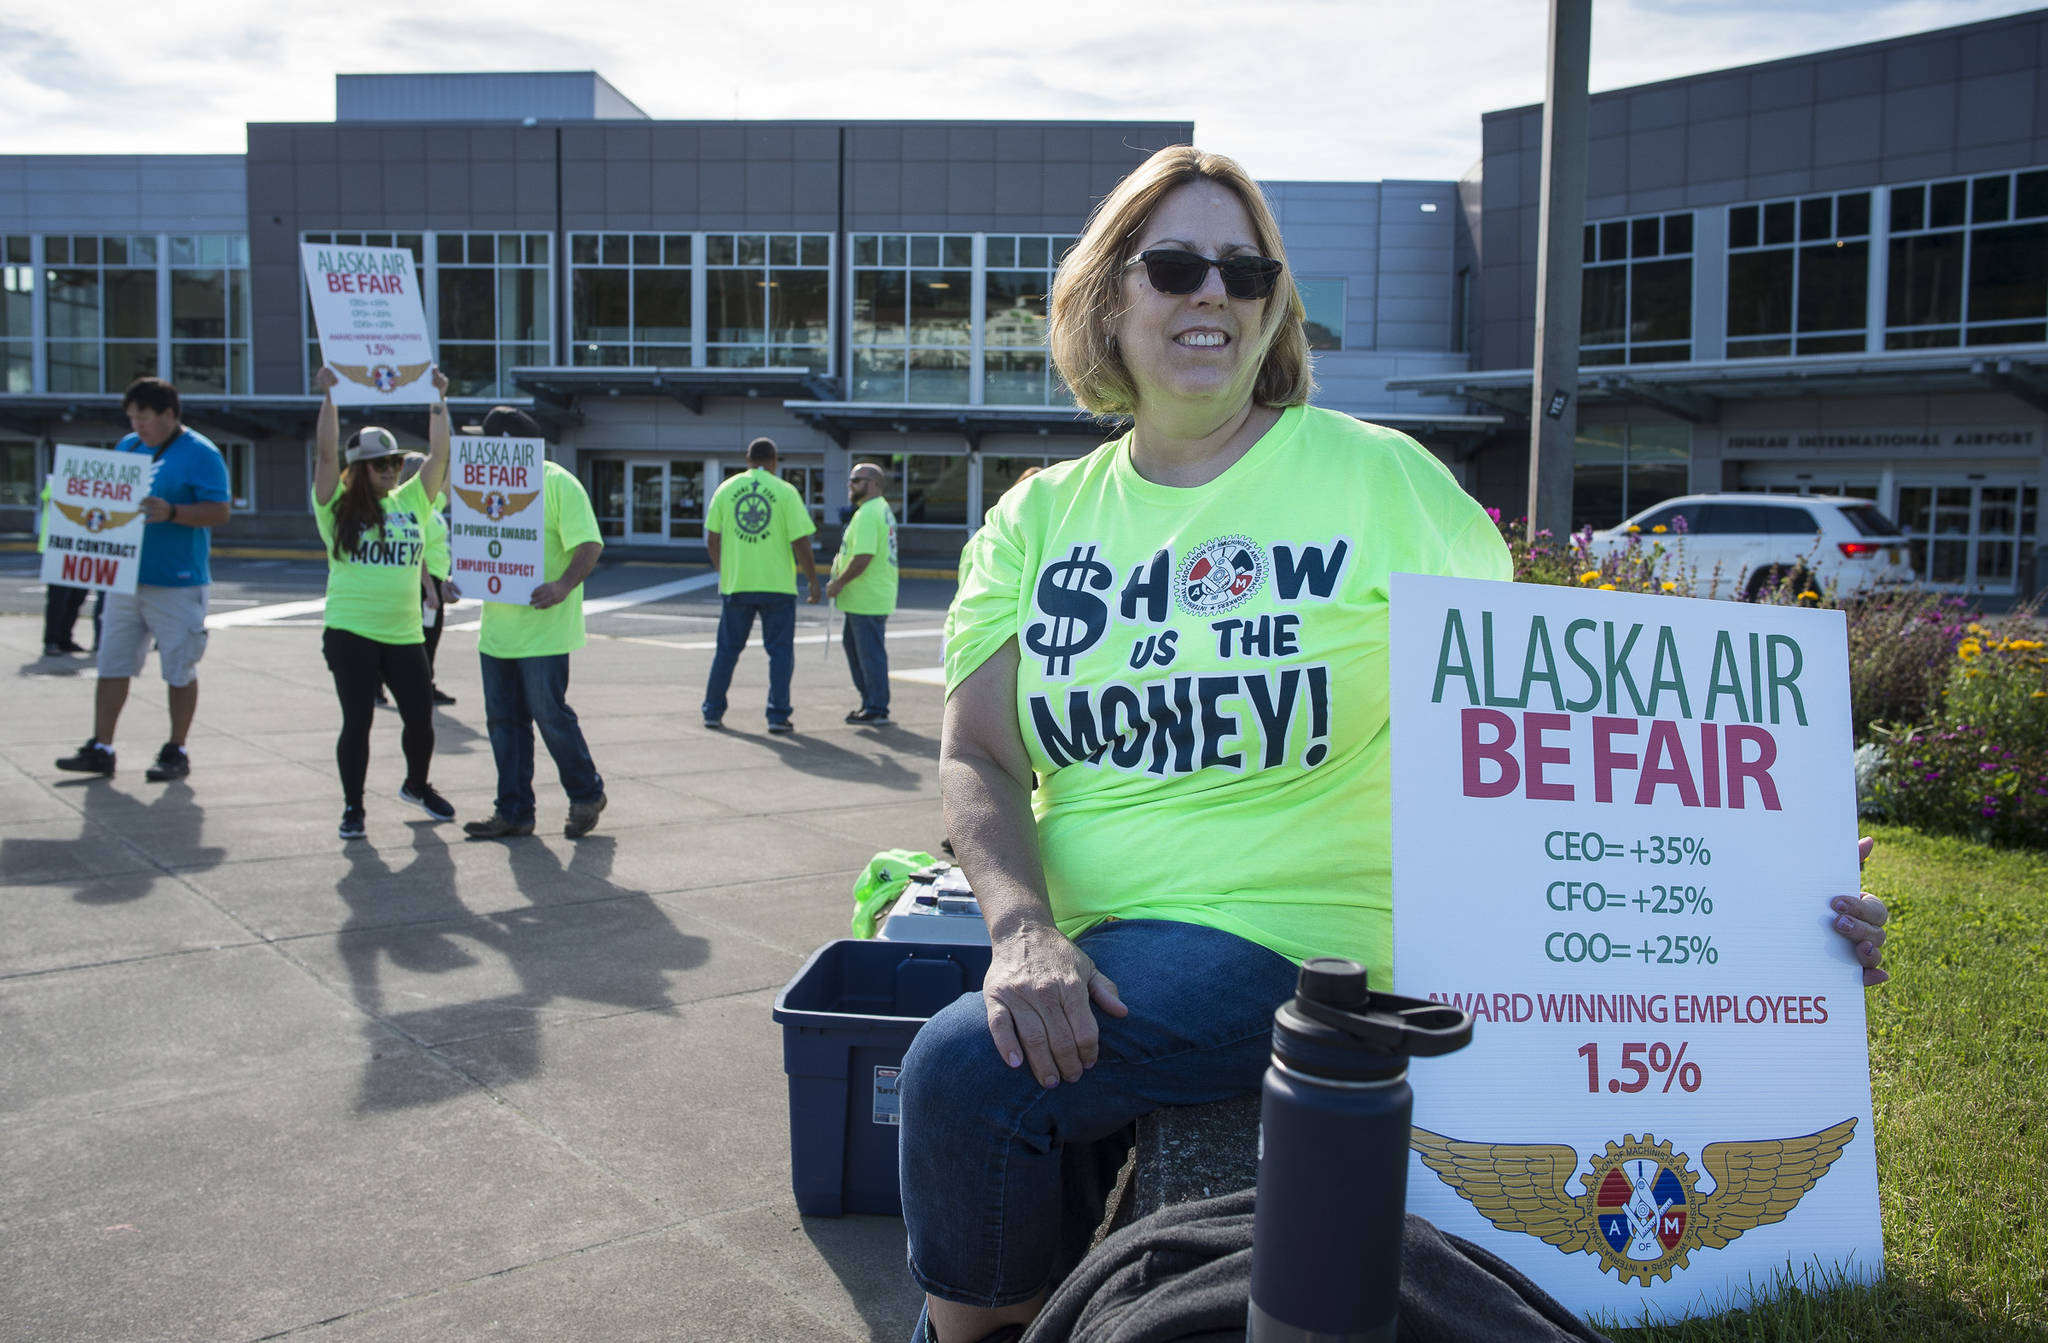 Employees ask Alaska Airlines for better wages, job security